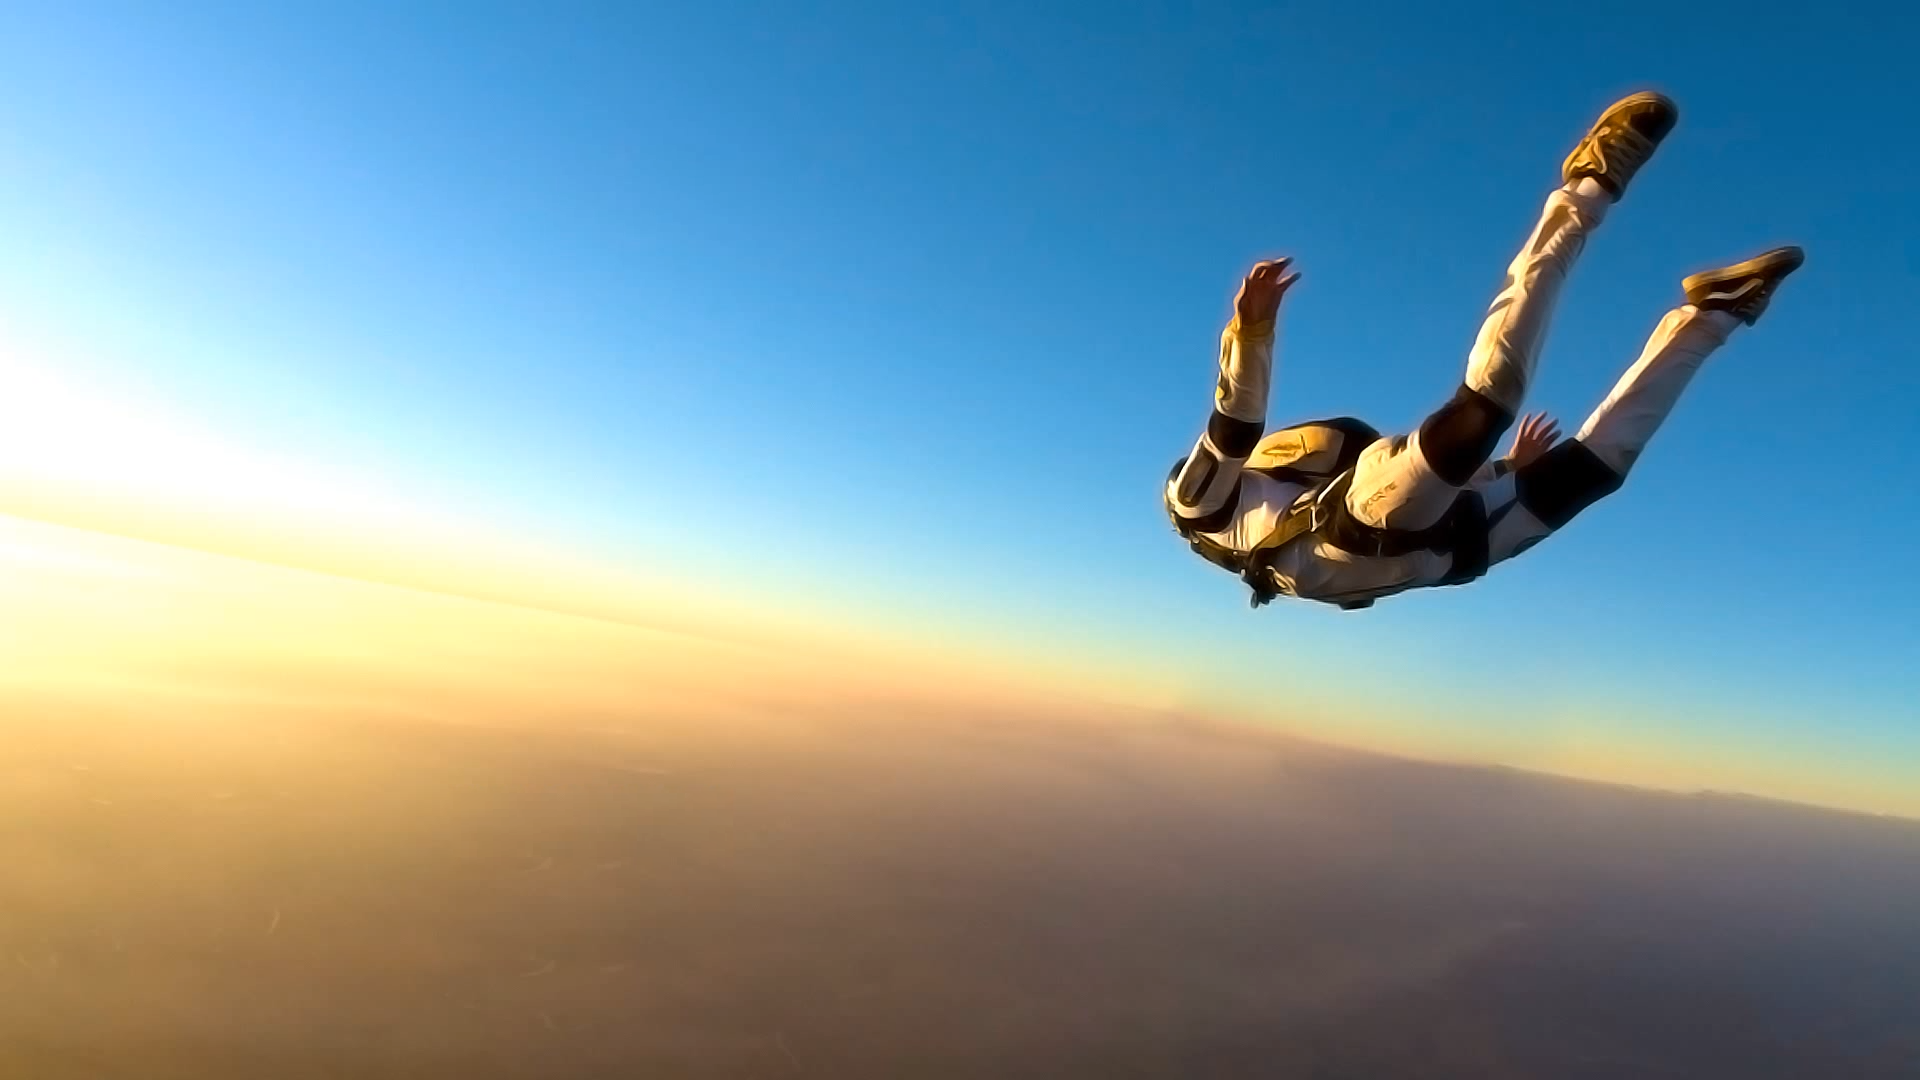 1920x1080 - Skydiving Wallpapers 2